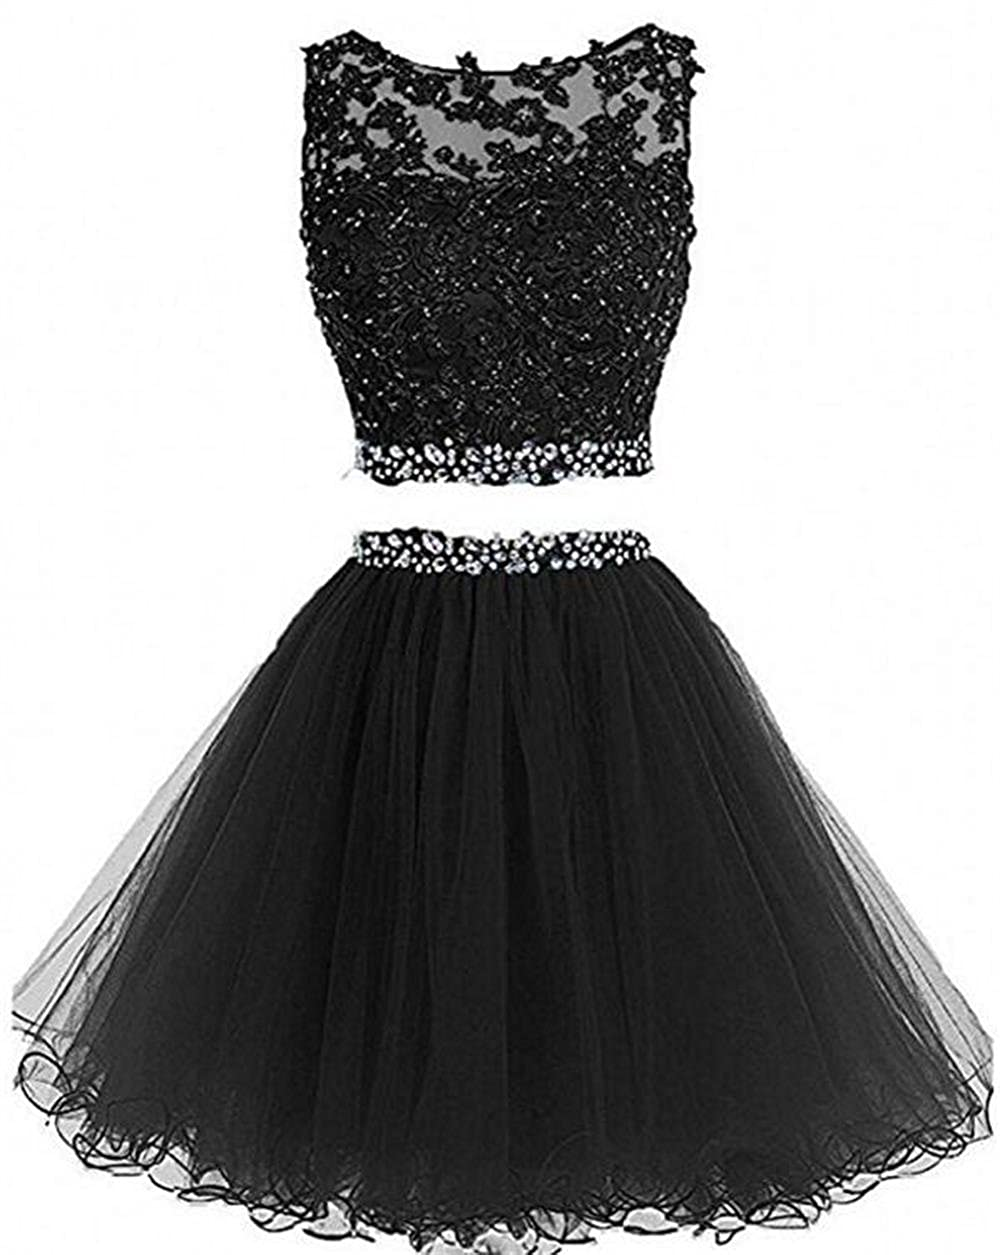 e02d5a03c2a98 Dydsz Women's Prom Homecoming Dress Short for Juniors 2019 Party ...